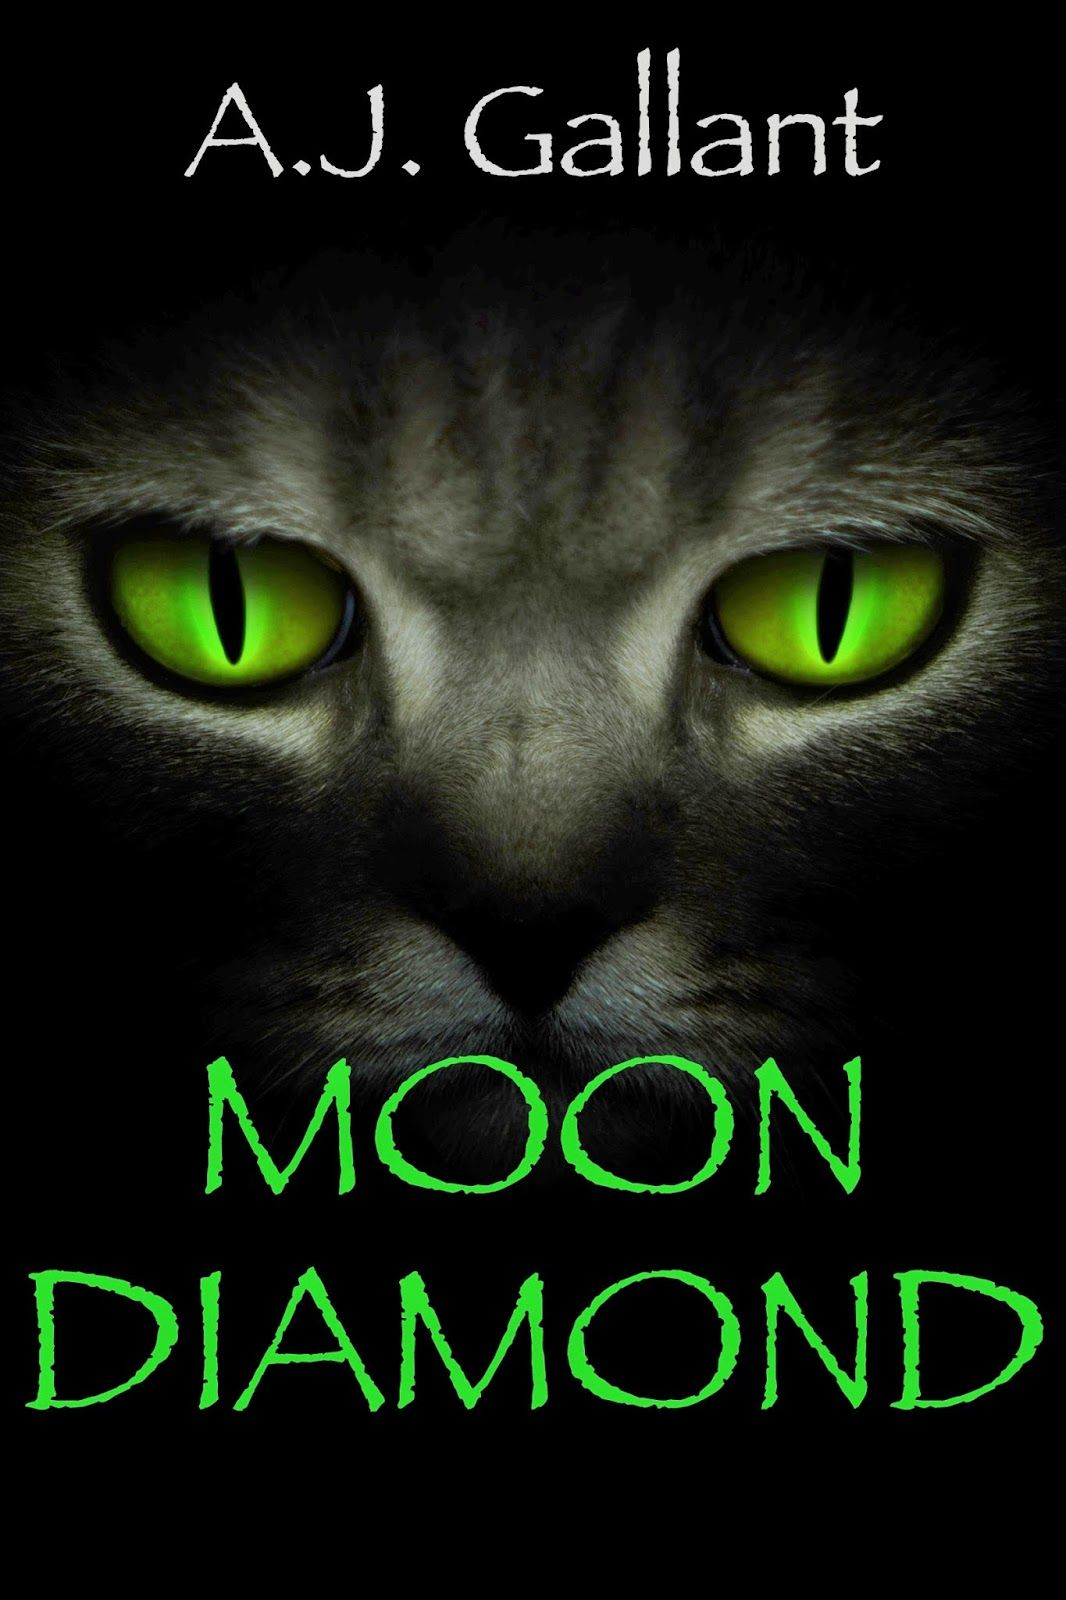 Tome Tender: A. J. Gallant's MOON DIAMOND Book Blitz